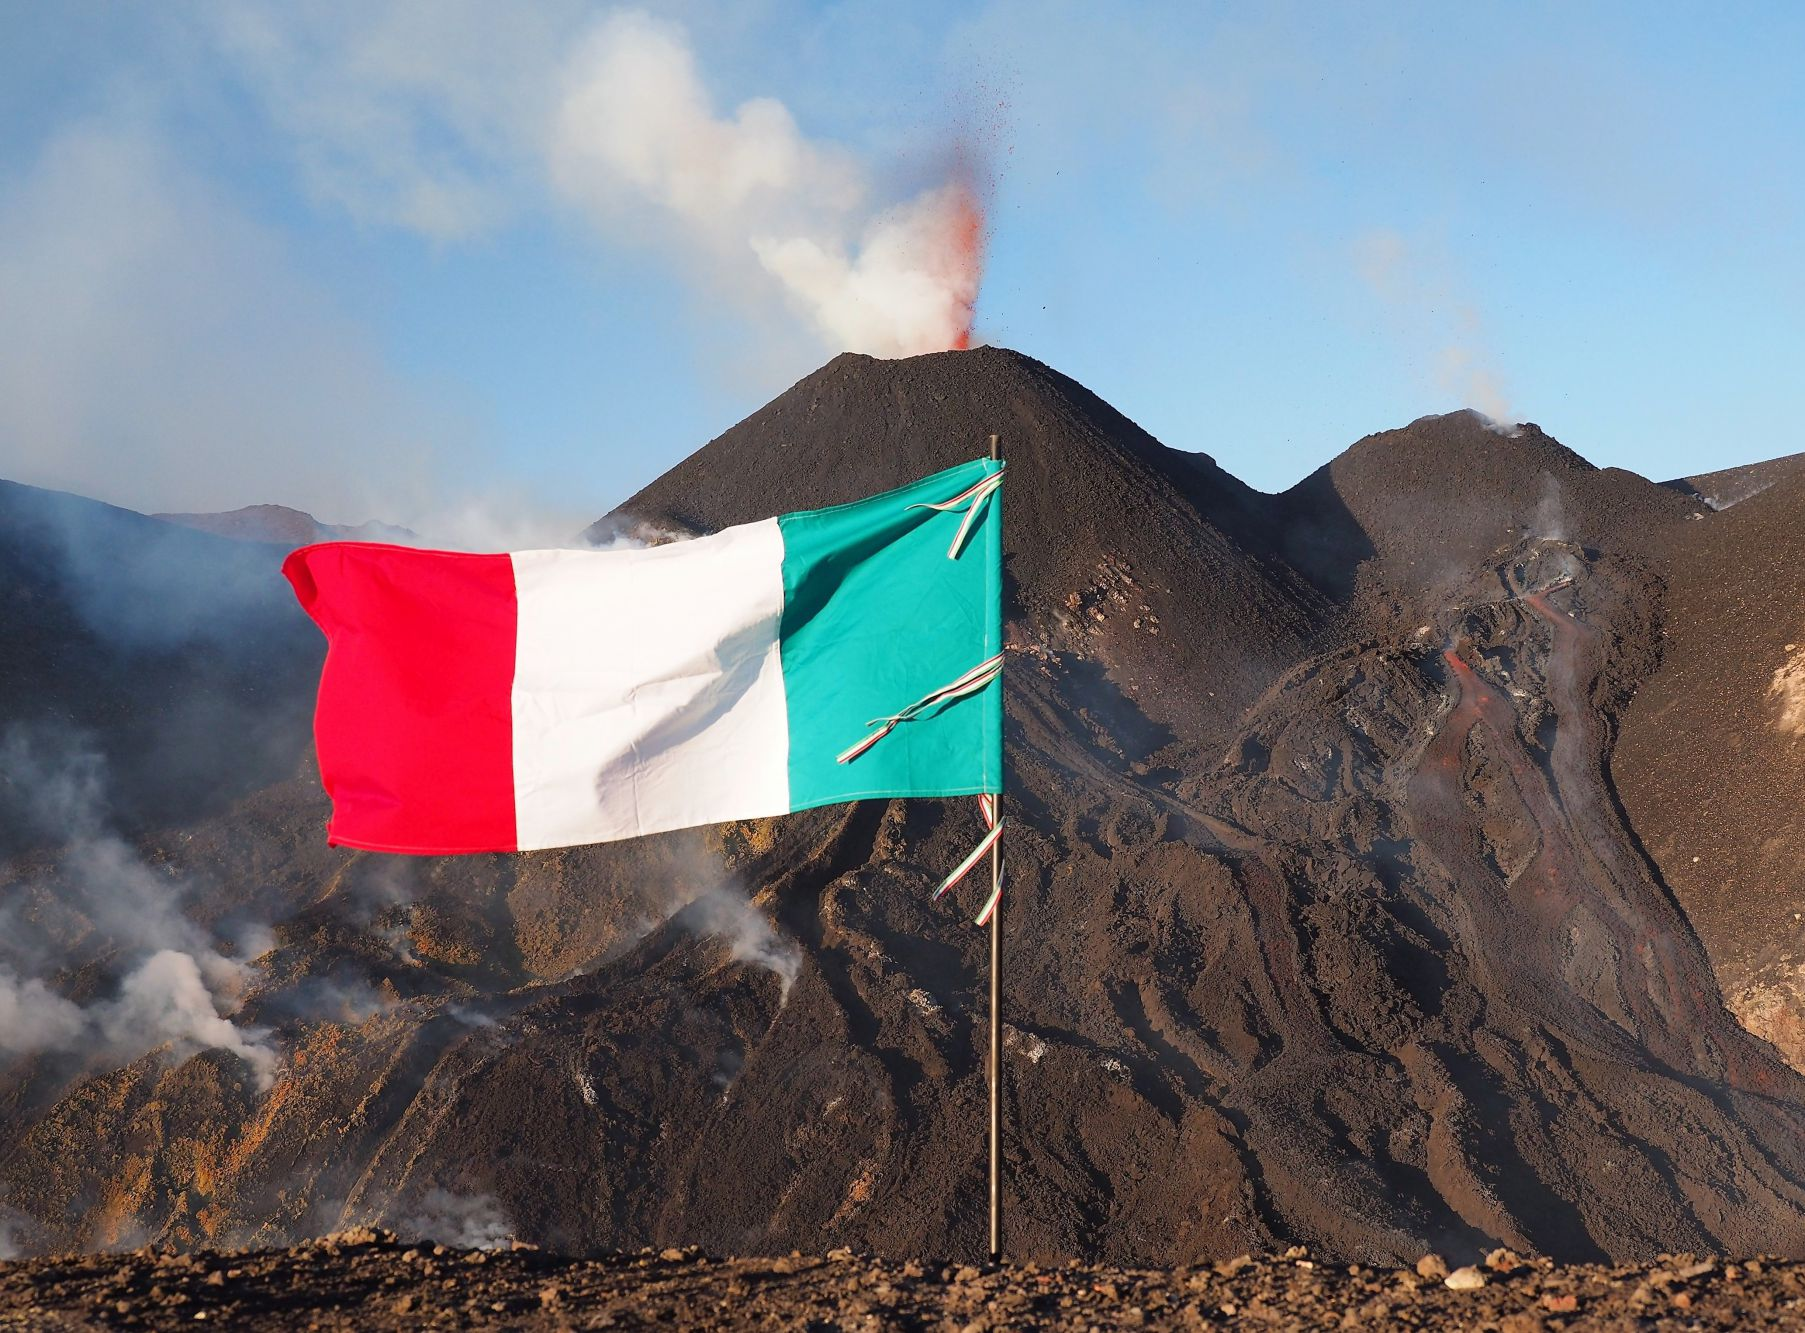 WELCOME TO GRUPPO GUIDE ETNA NORD